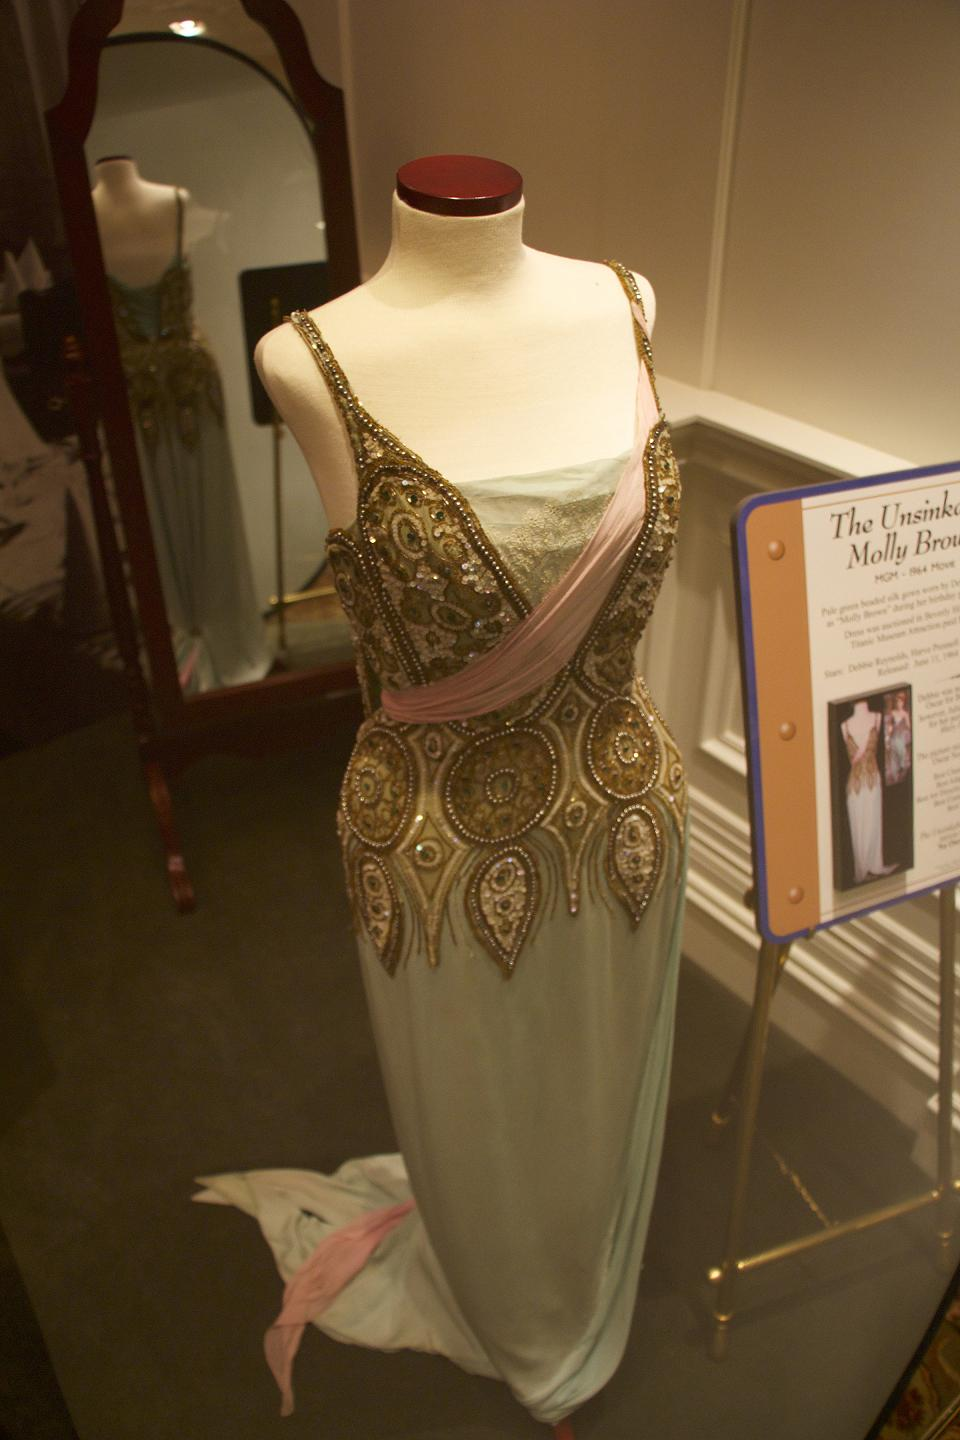 Molly Brown movie evening dress